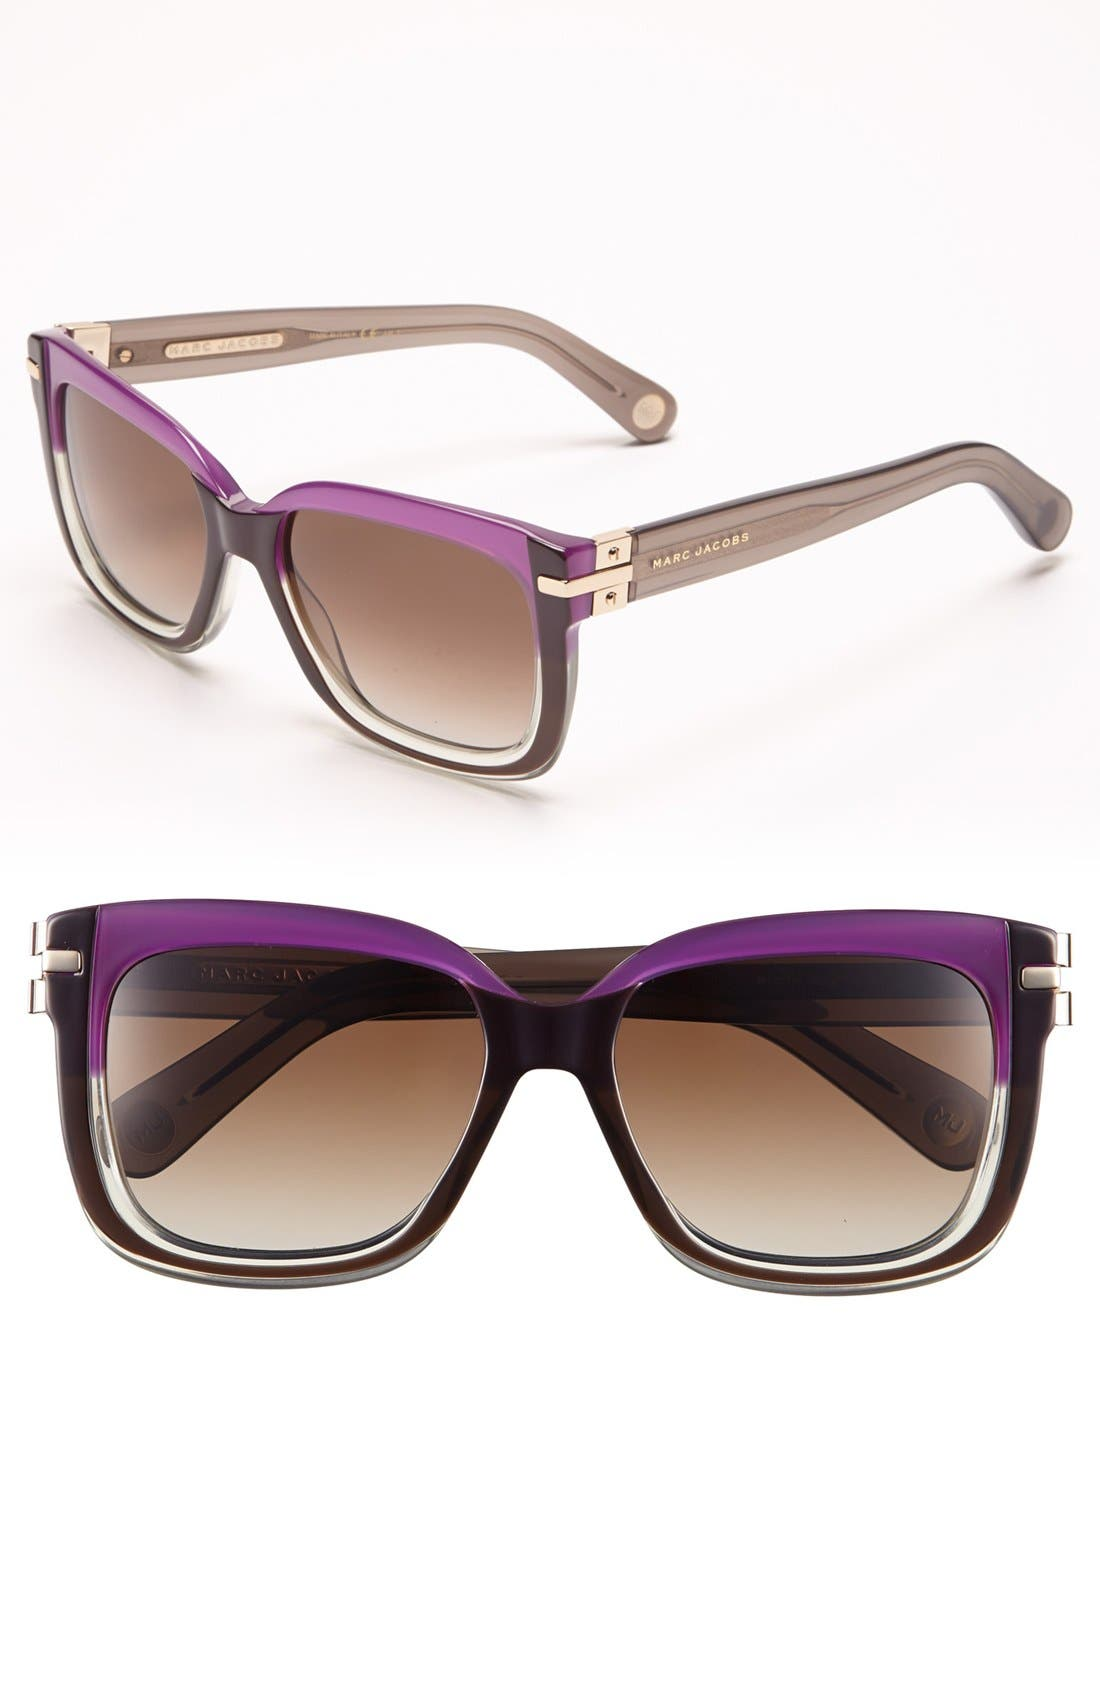 Main Image - MARC JACOBS 55mm Retro Sunglasses